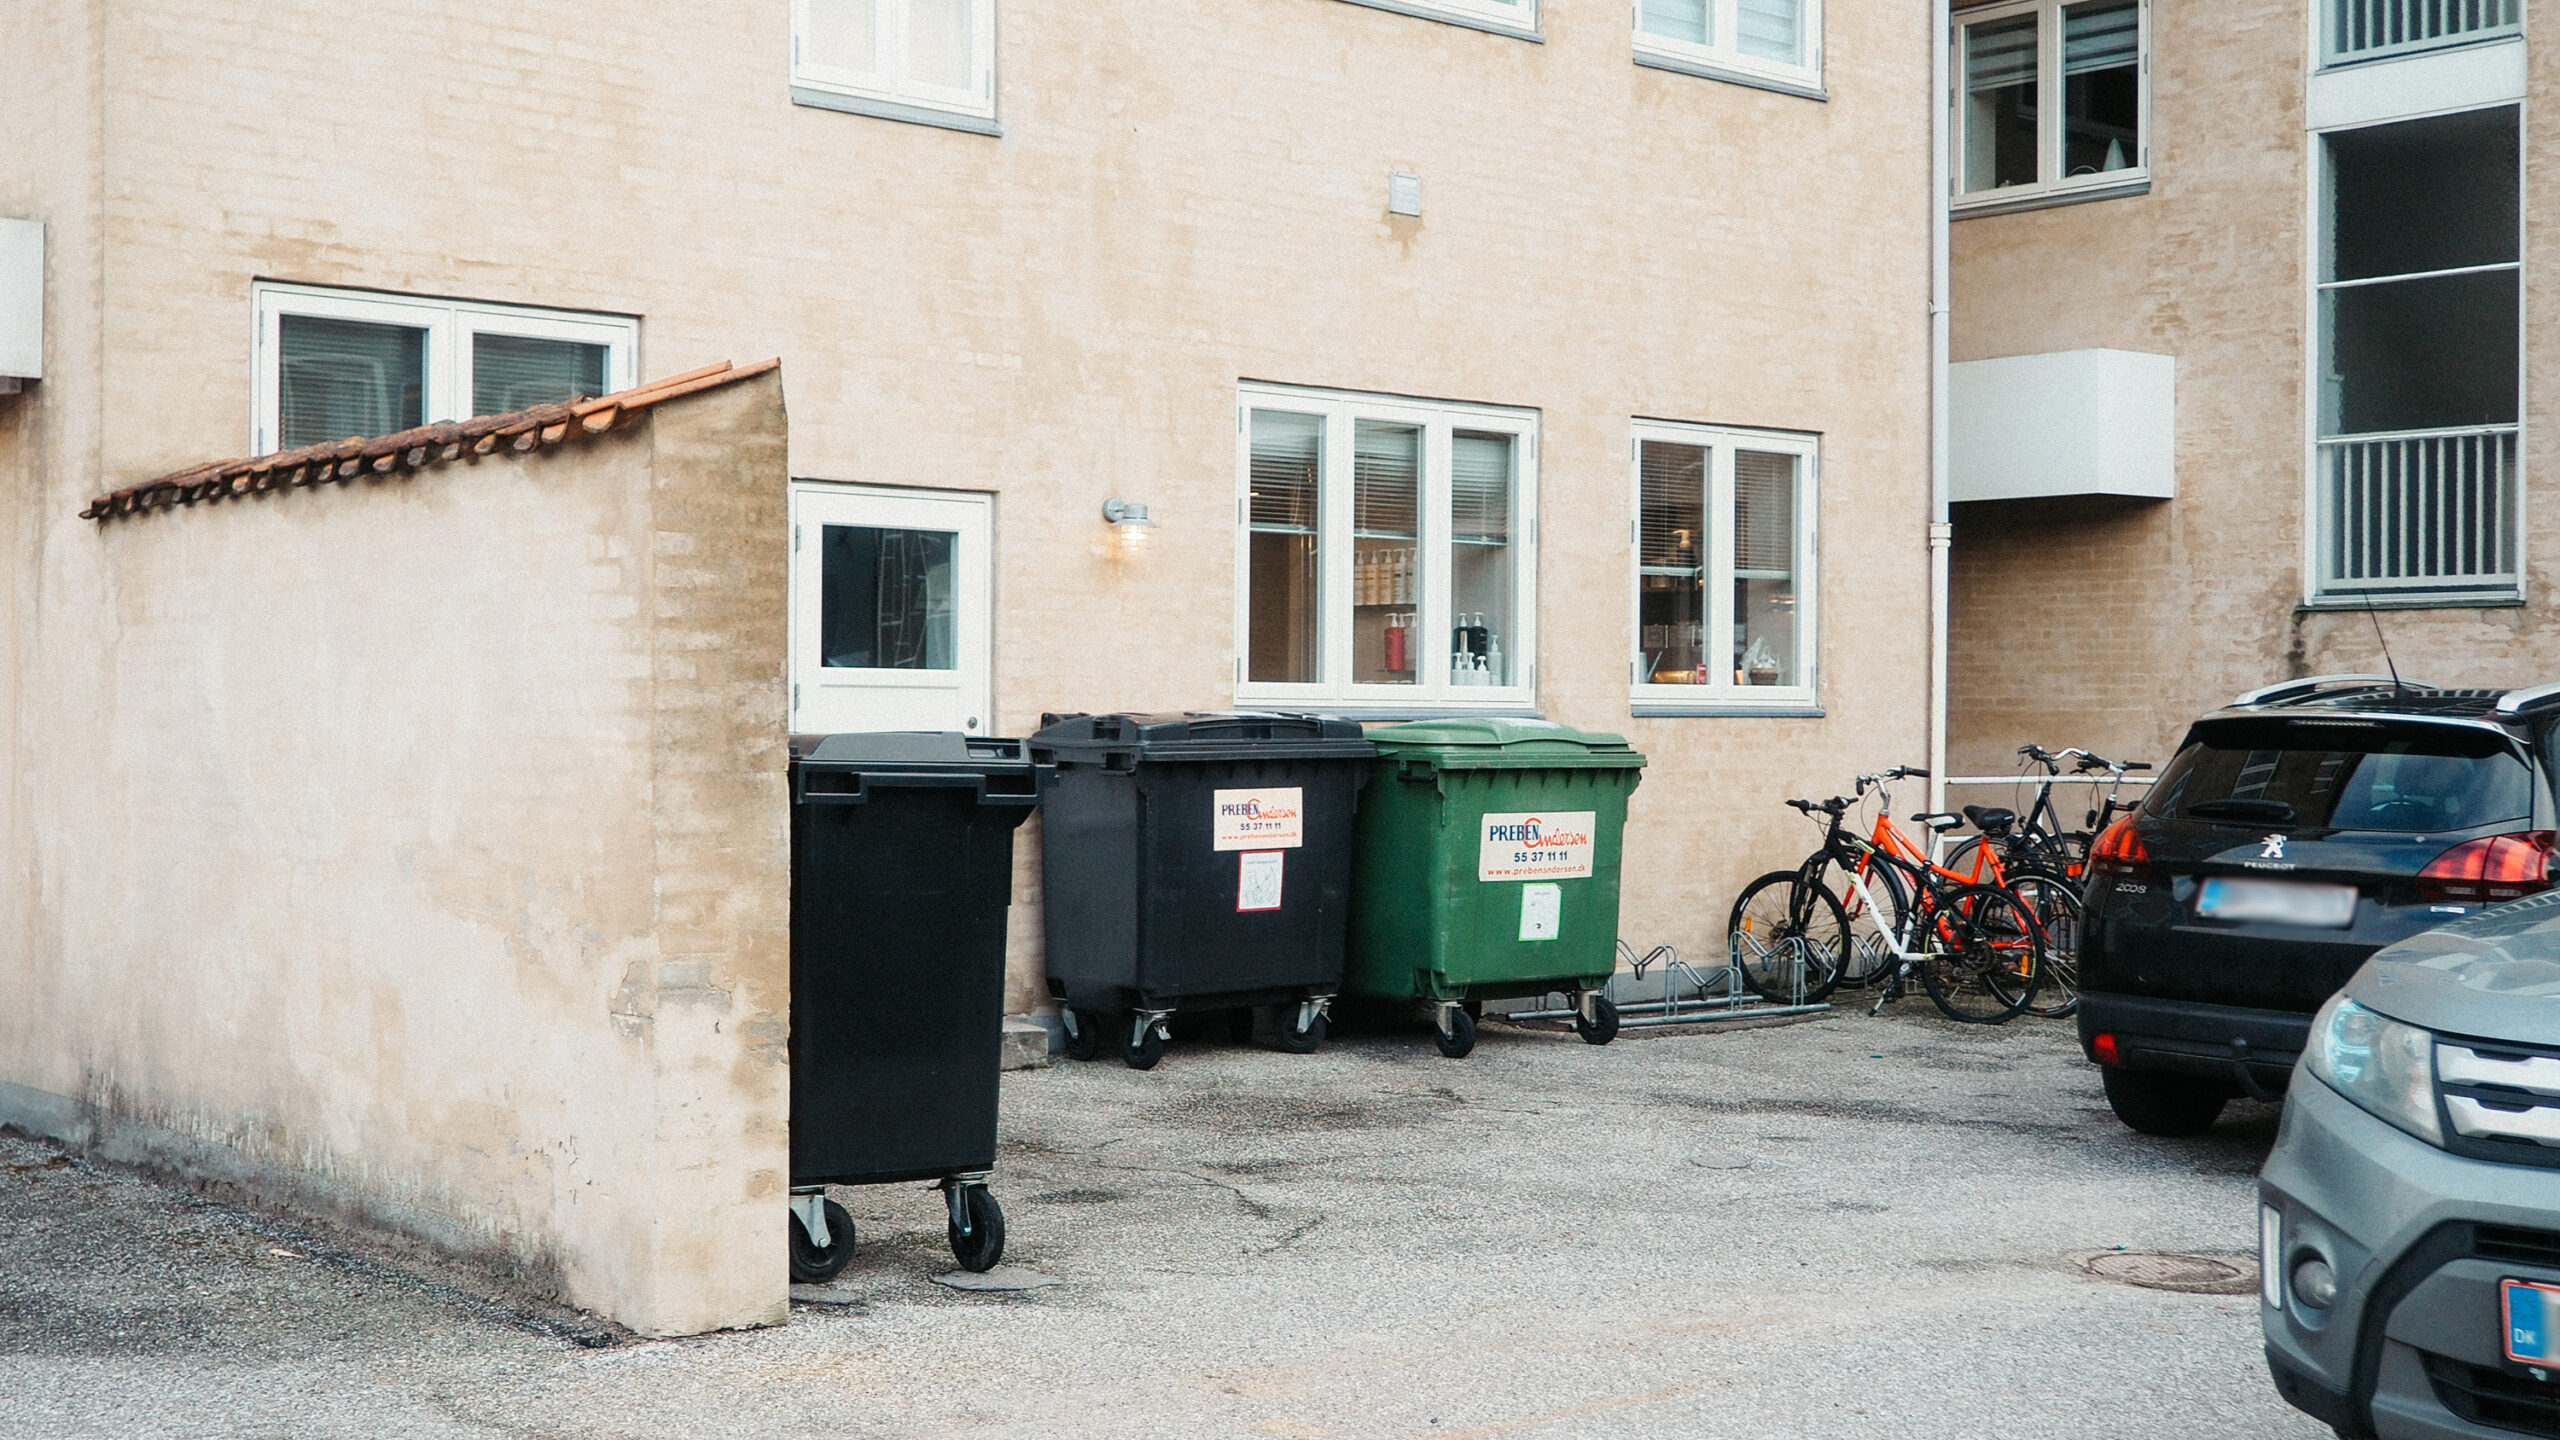 Sustainable Urban Development: Innovative Waste Solutions Management And Energy Reduction